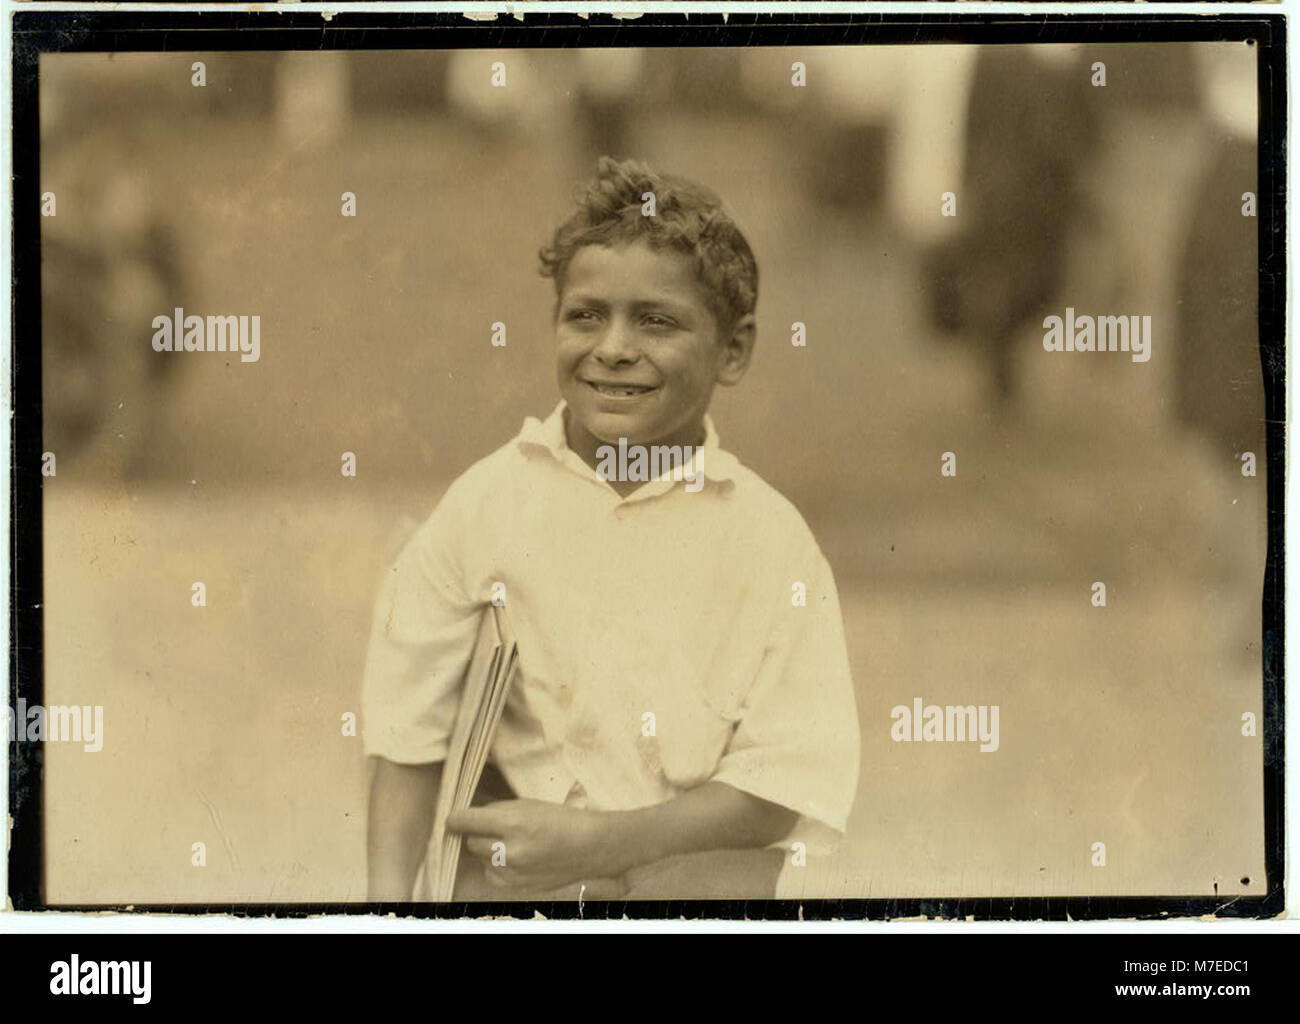 Patsy Eight Year Old Newsboy Newark N J Says He Makes Fifty Cents A Day Aug 1 1924 Loc Nclc 04054